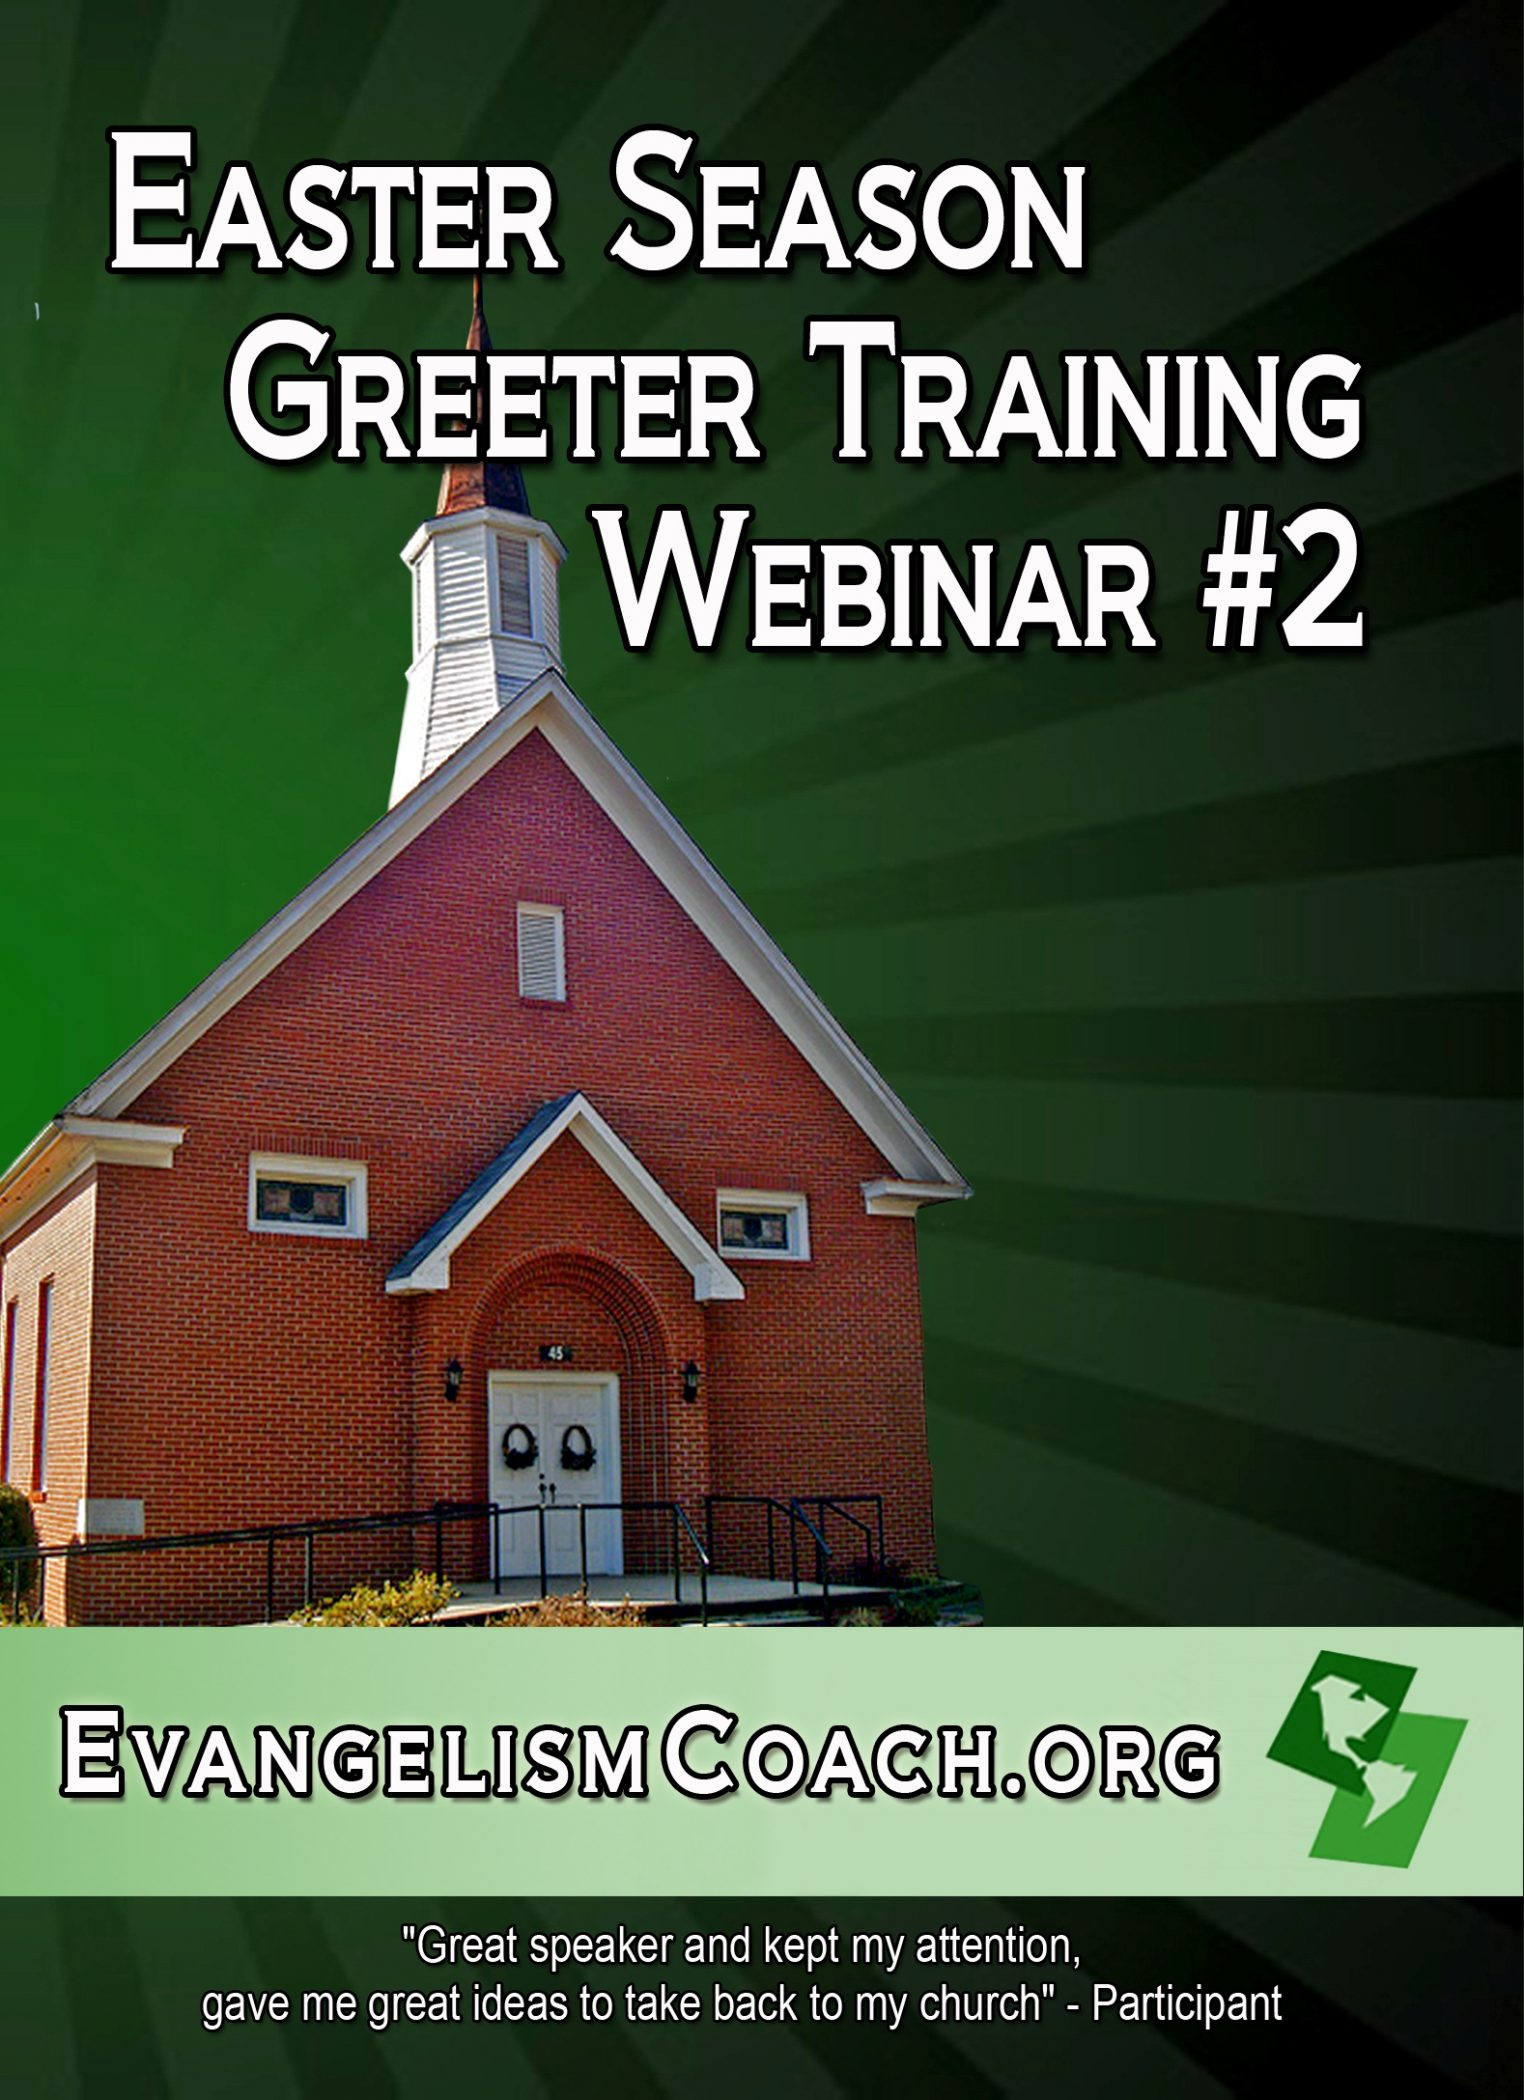 Church Greeter Training Webinar